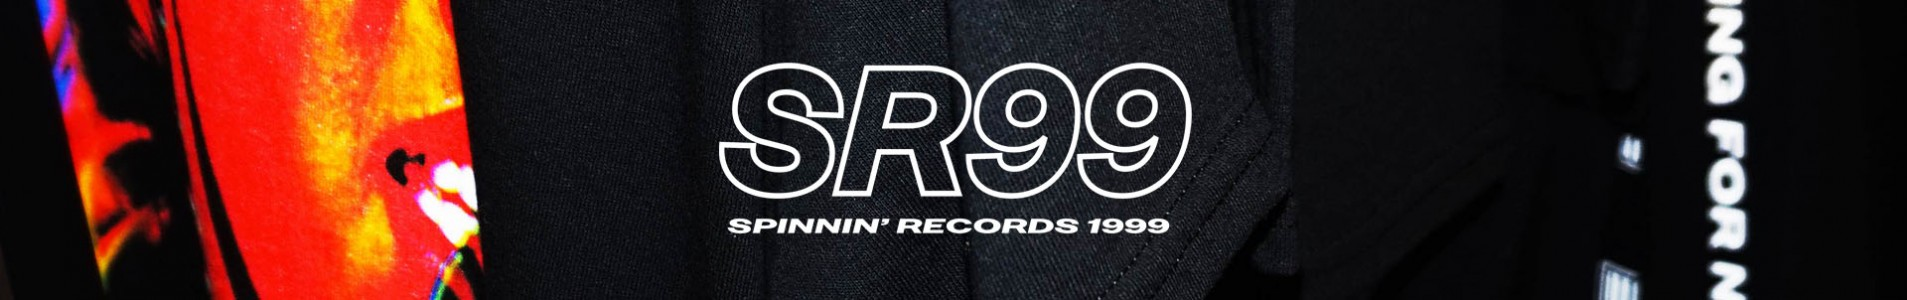 SR99 merchandise available now!